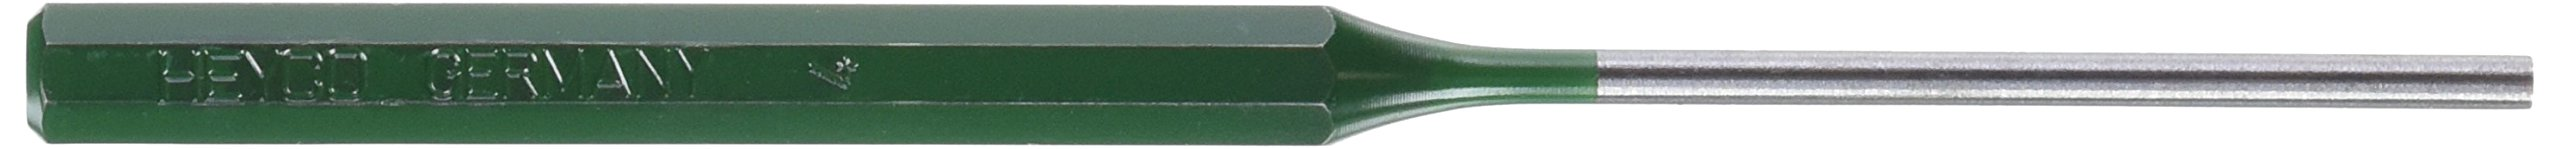 Heyco 1565100421 Parallel pin punch''1565'' 41mm